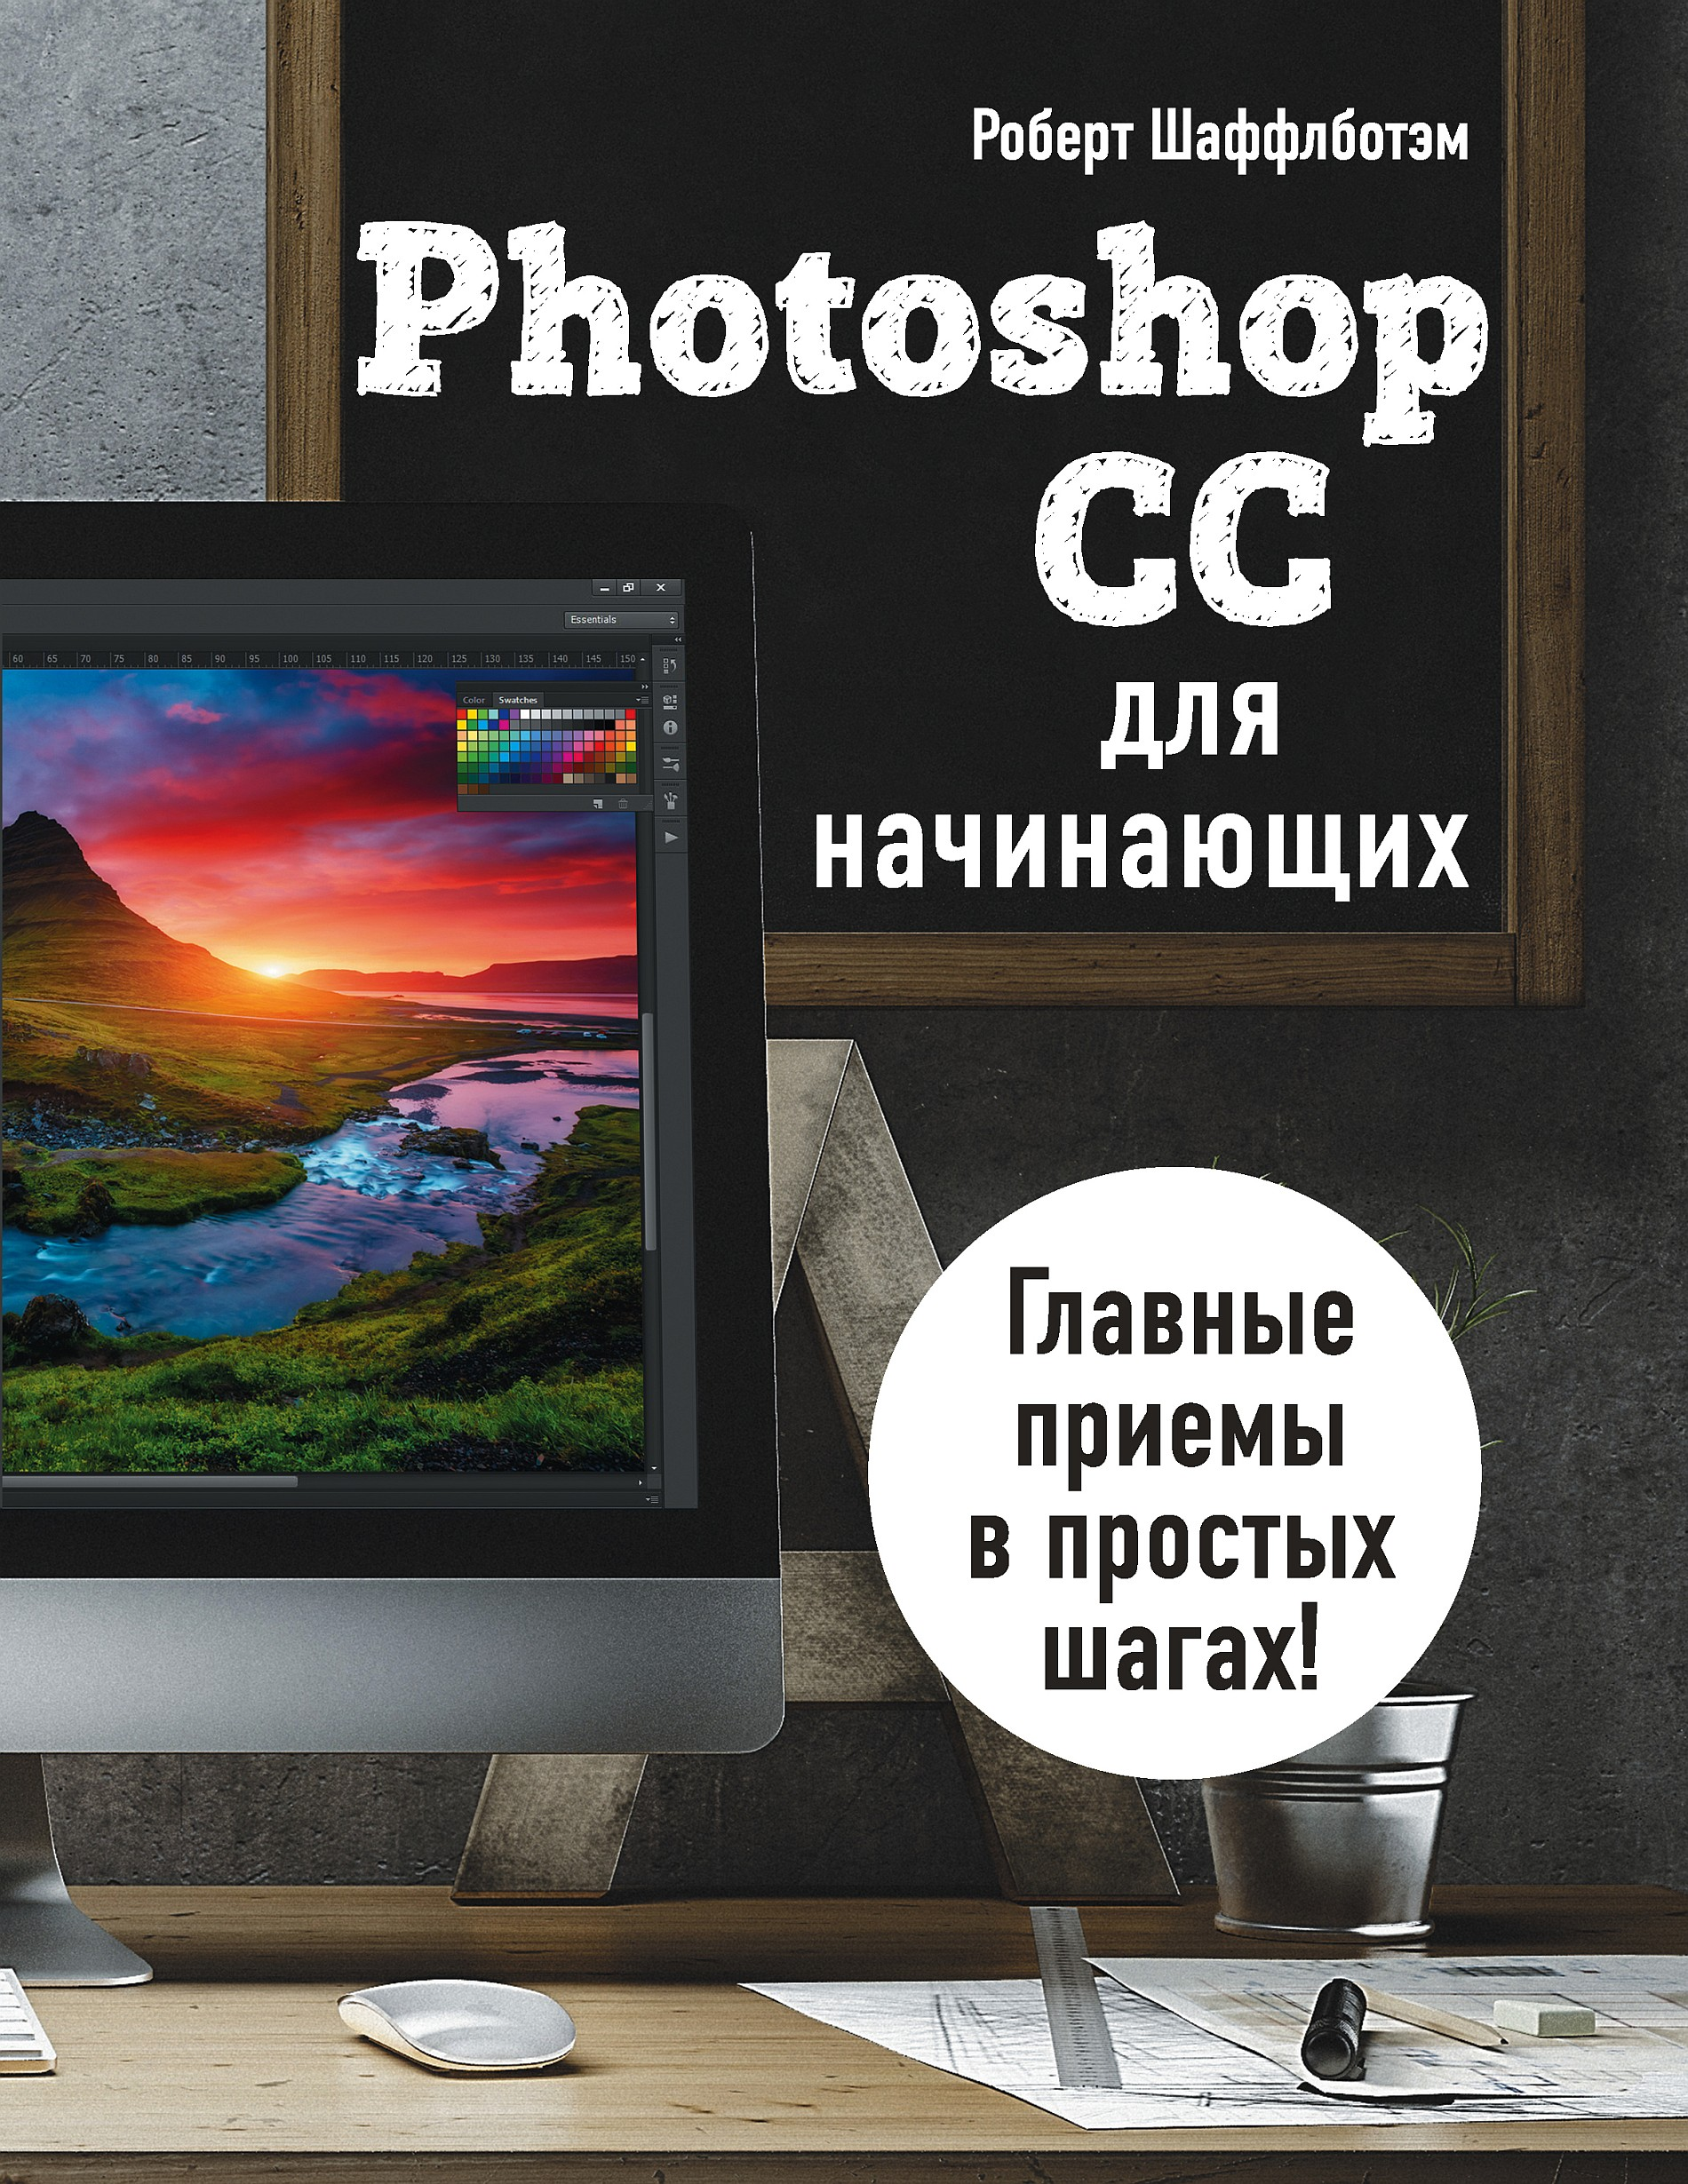 Роберт Шаффлботэм Photoshop CC для начинающих jennifer smith advanced photoshop cc for design professionals digital classroom